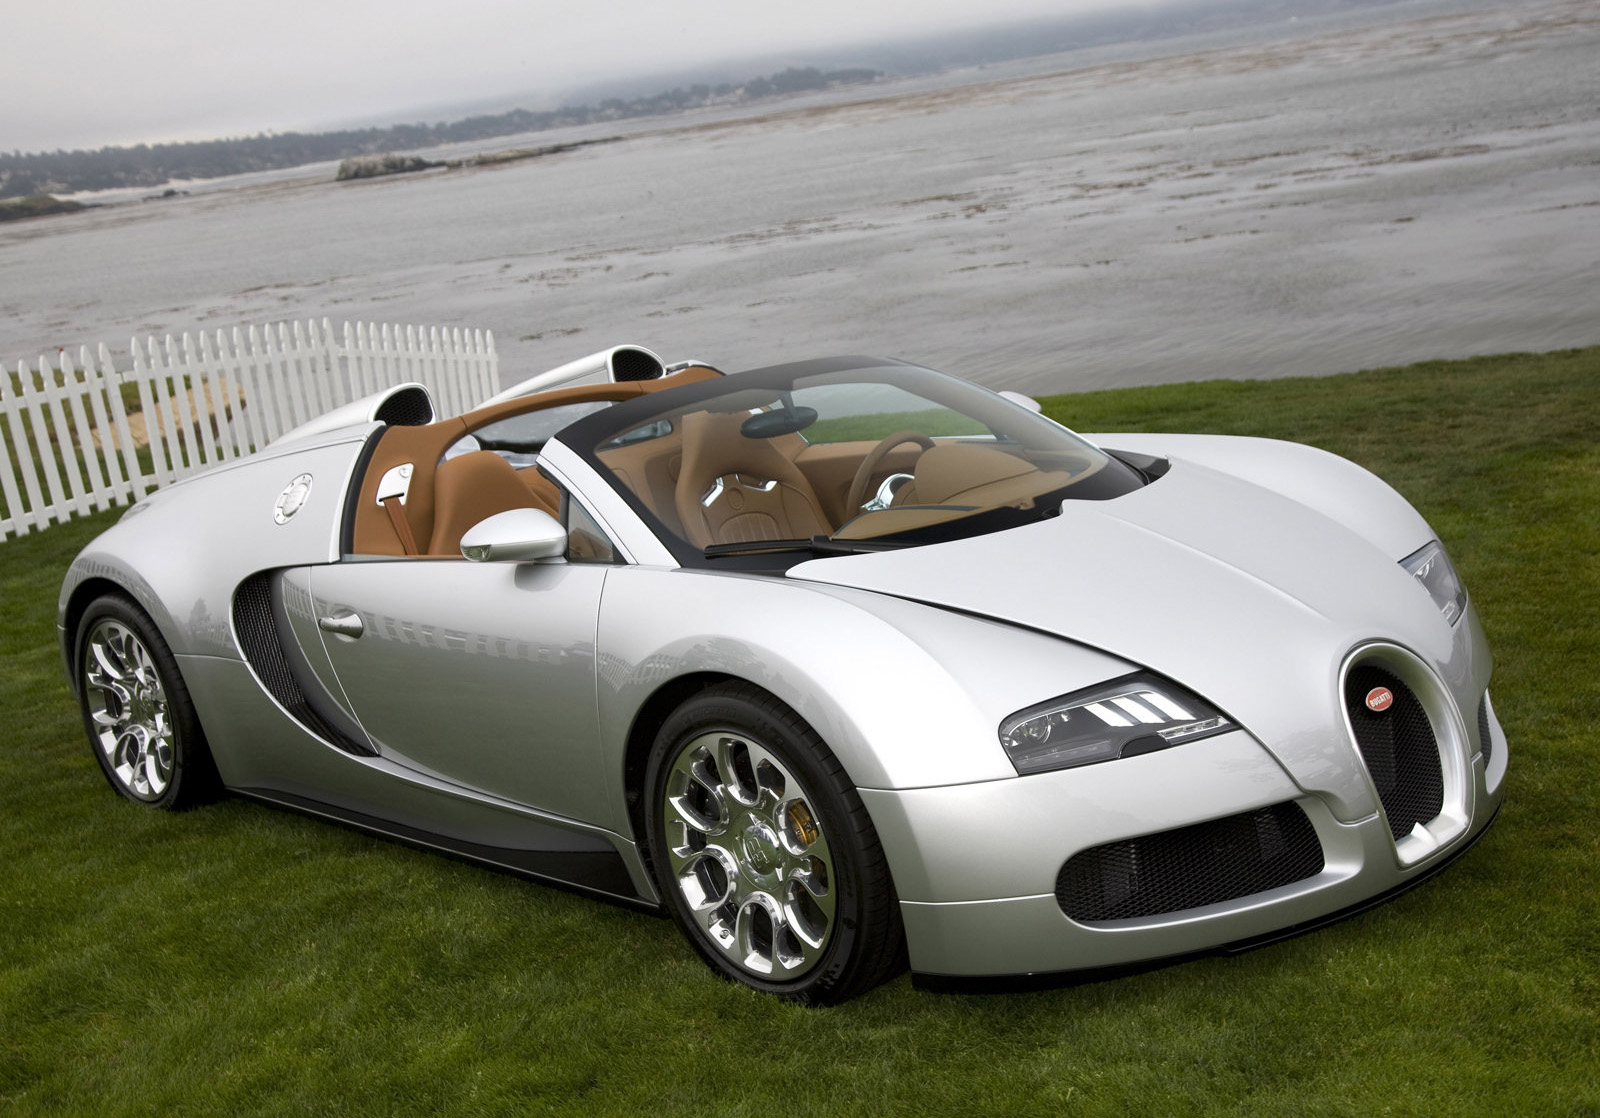 bugatti veyron 16 4 grand sport photos. Black Bedroom Furniture Sets. Home Design Ideas